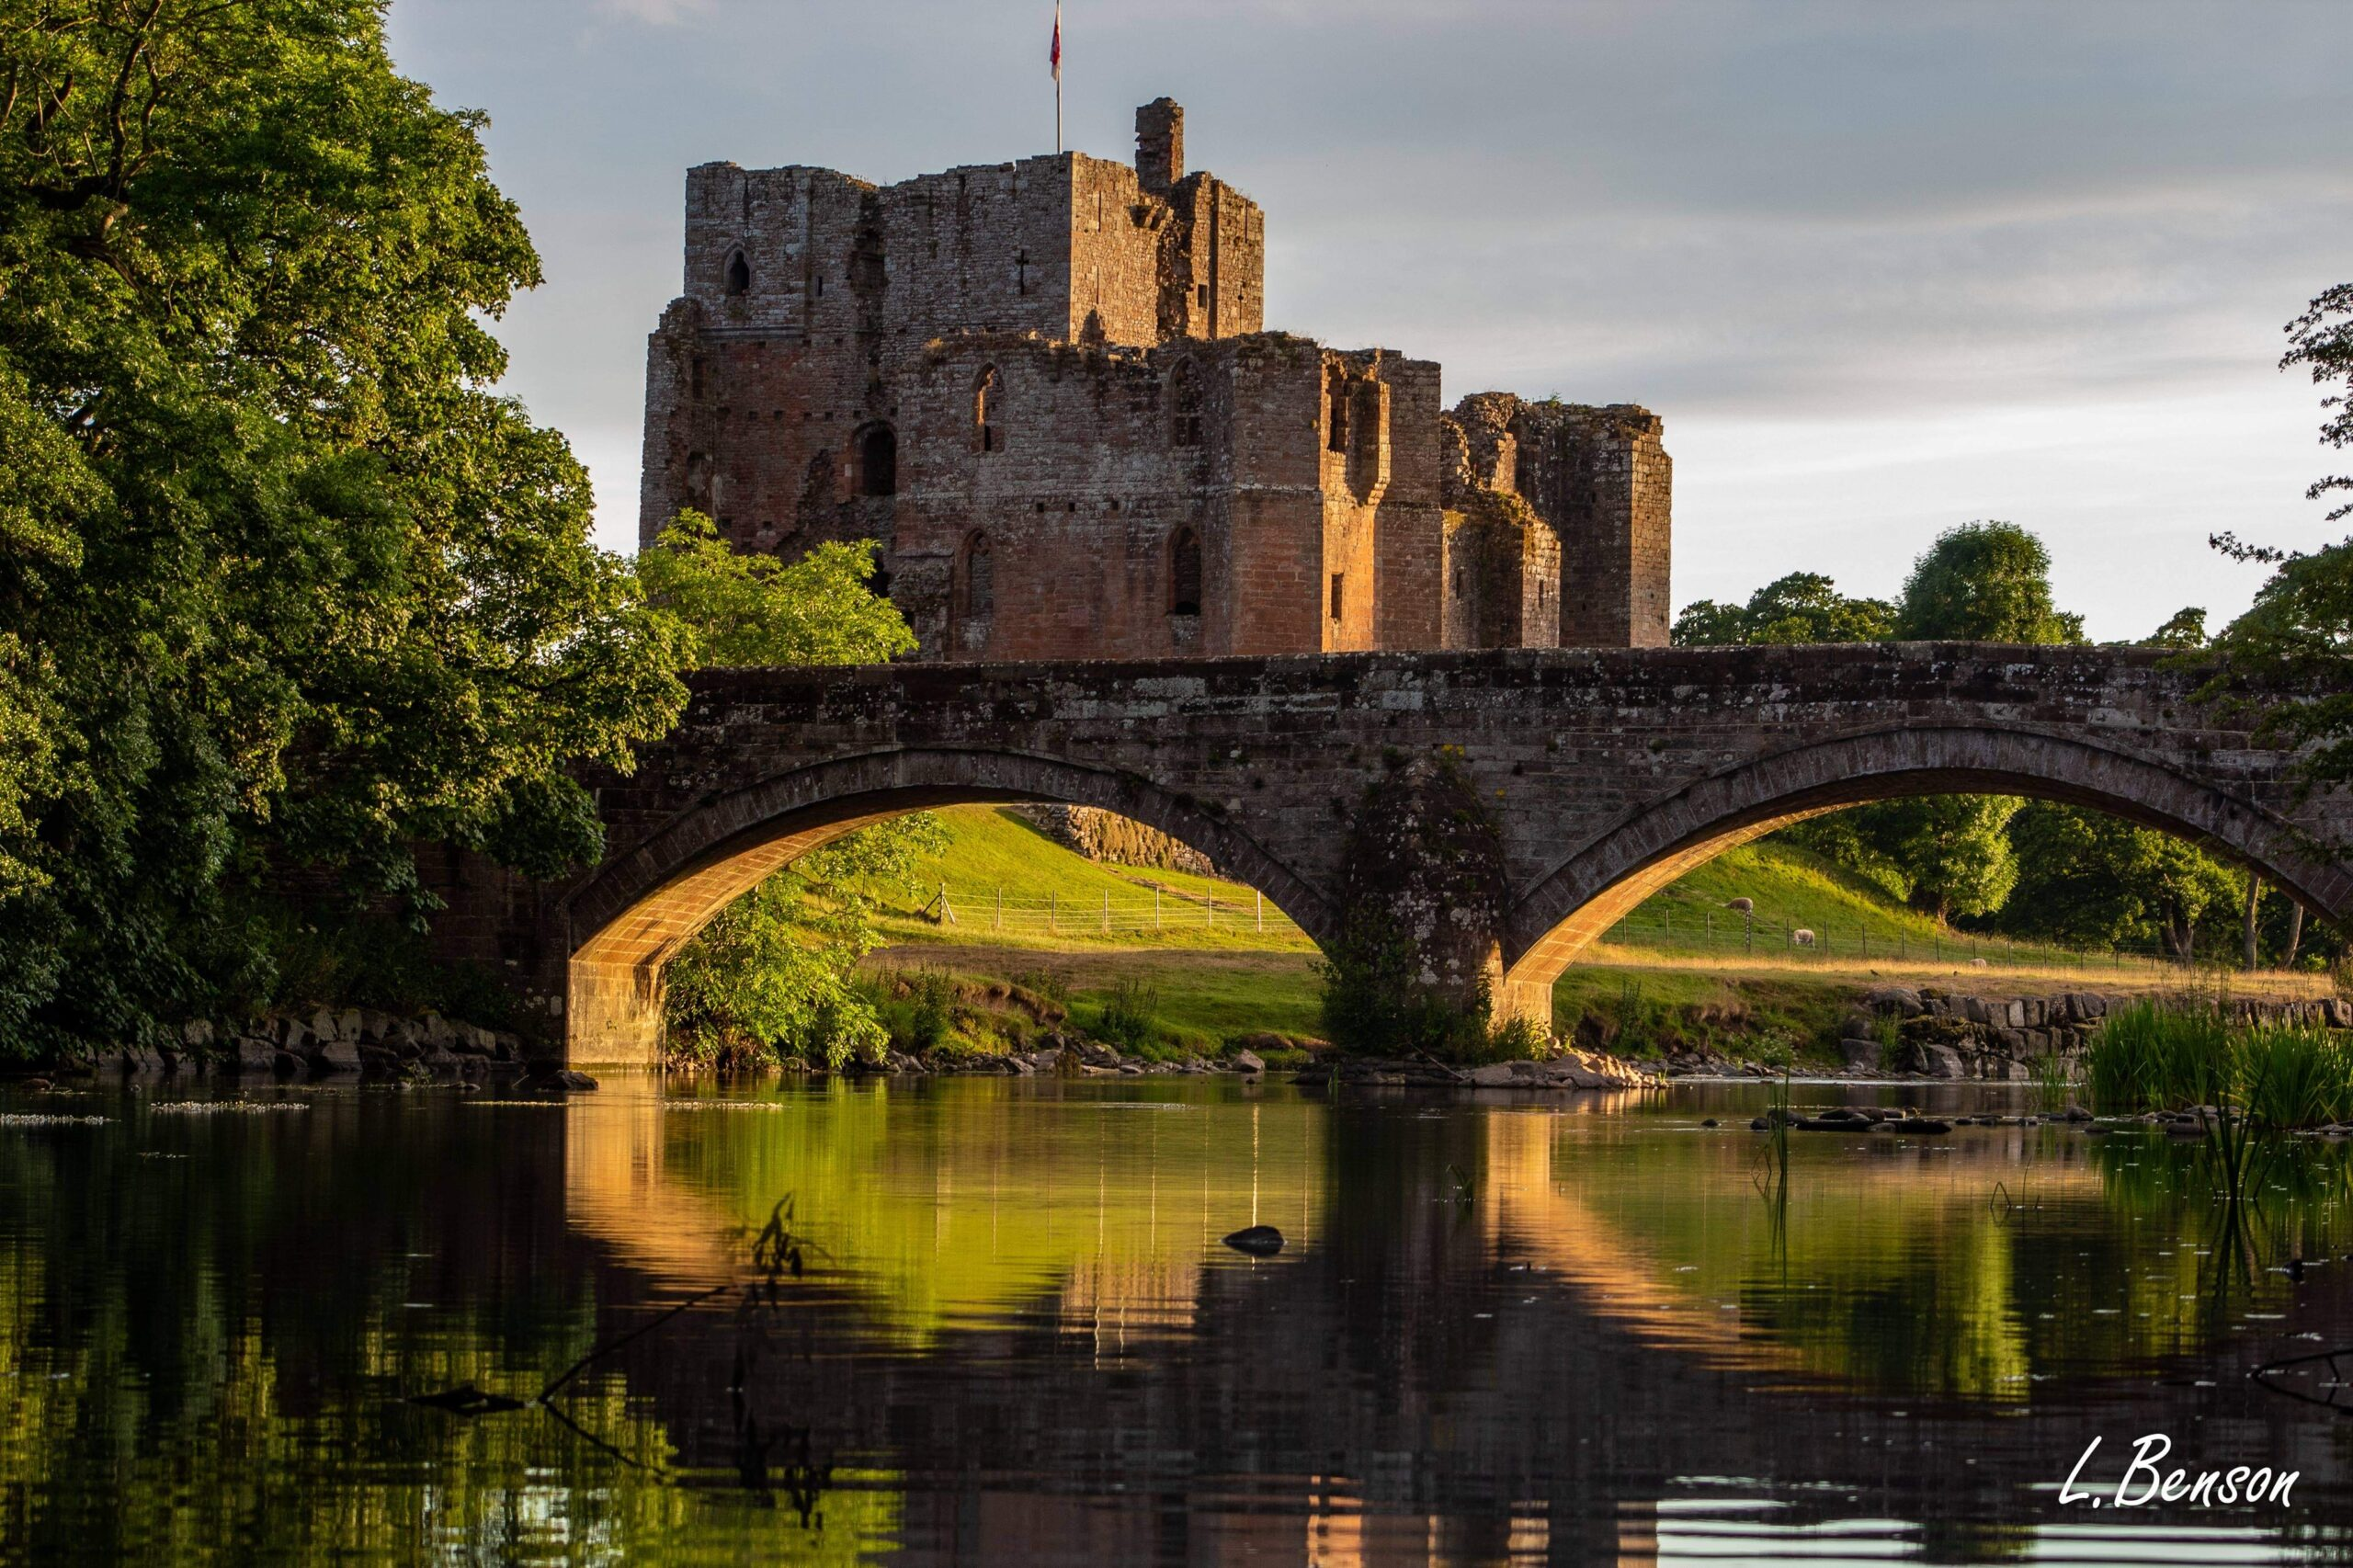 Brougham Castle viewed across the river and bridge